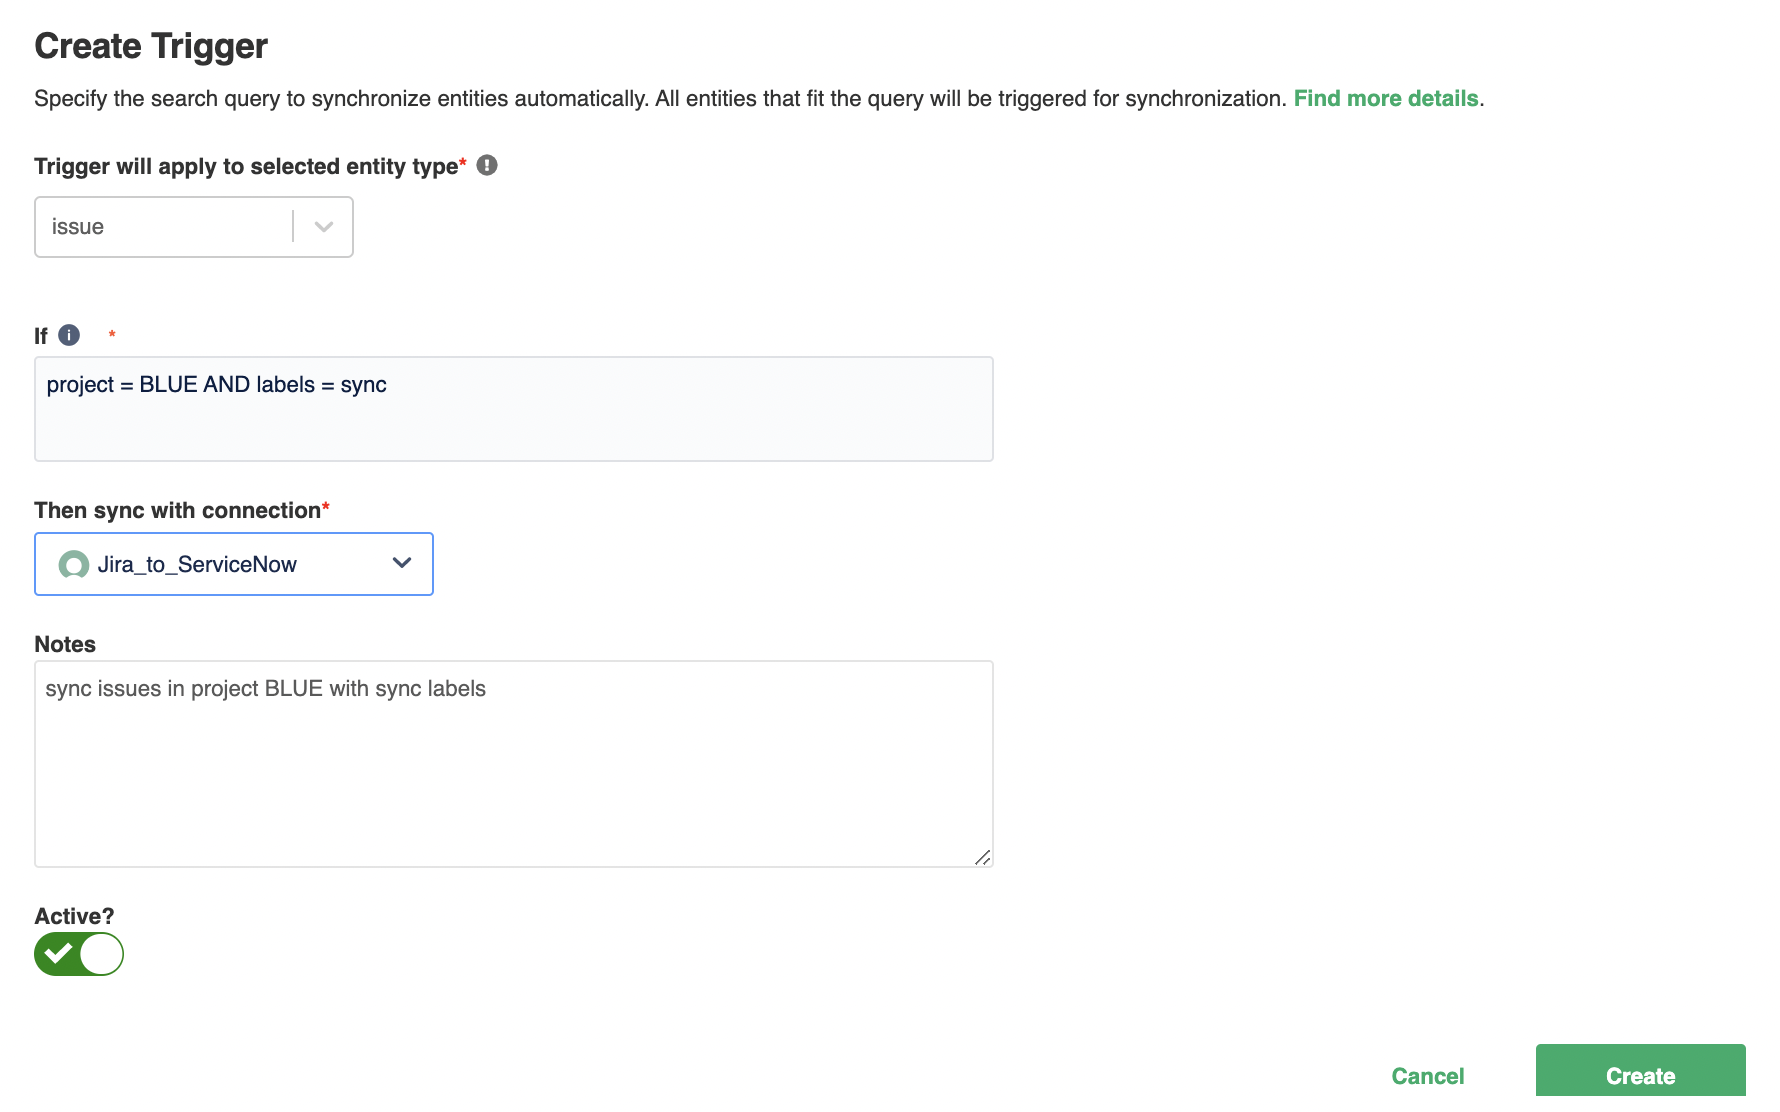 Create triggers for Jira issue sync